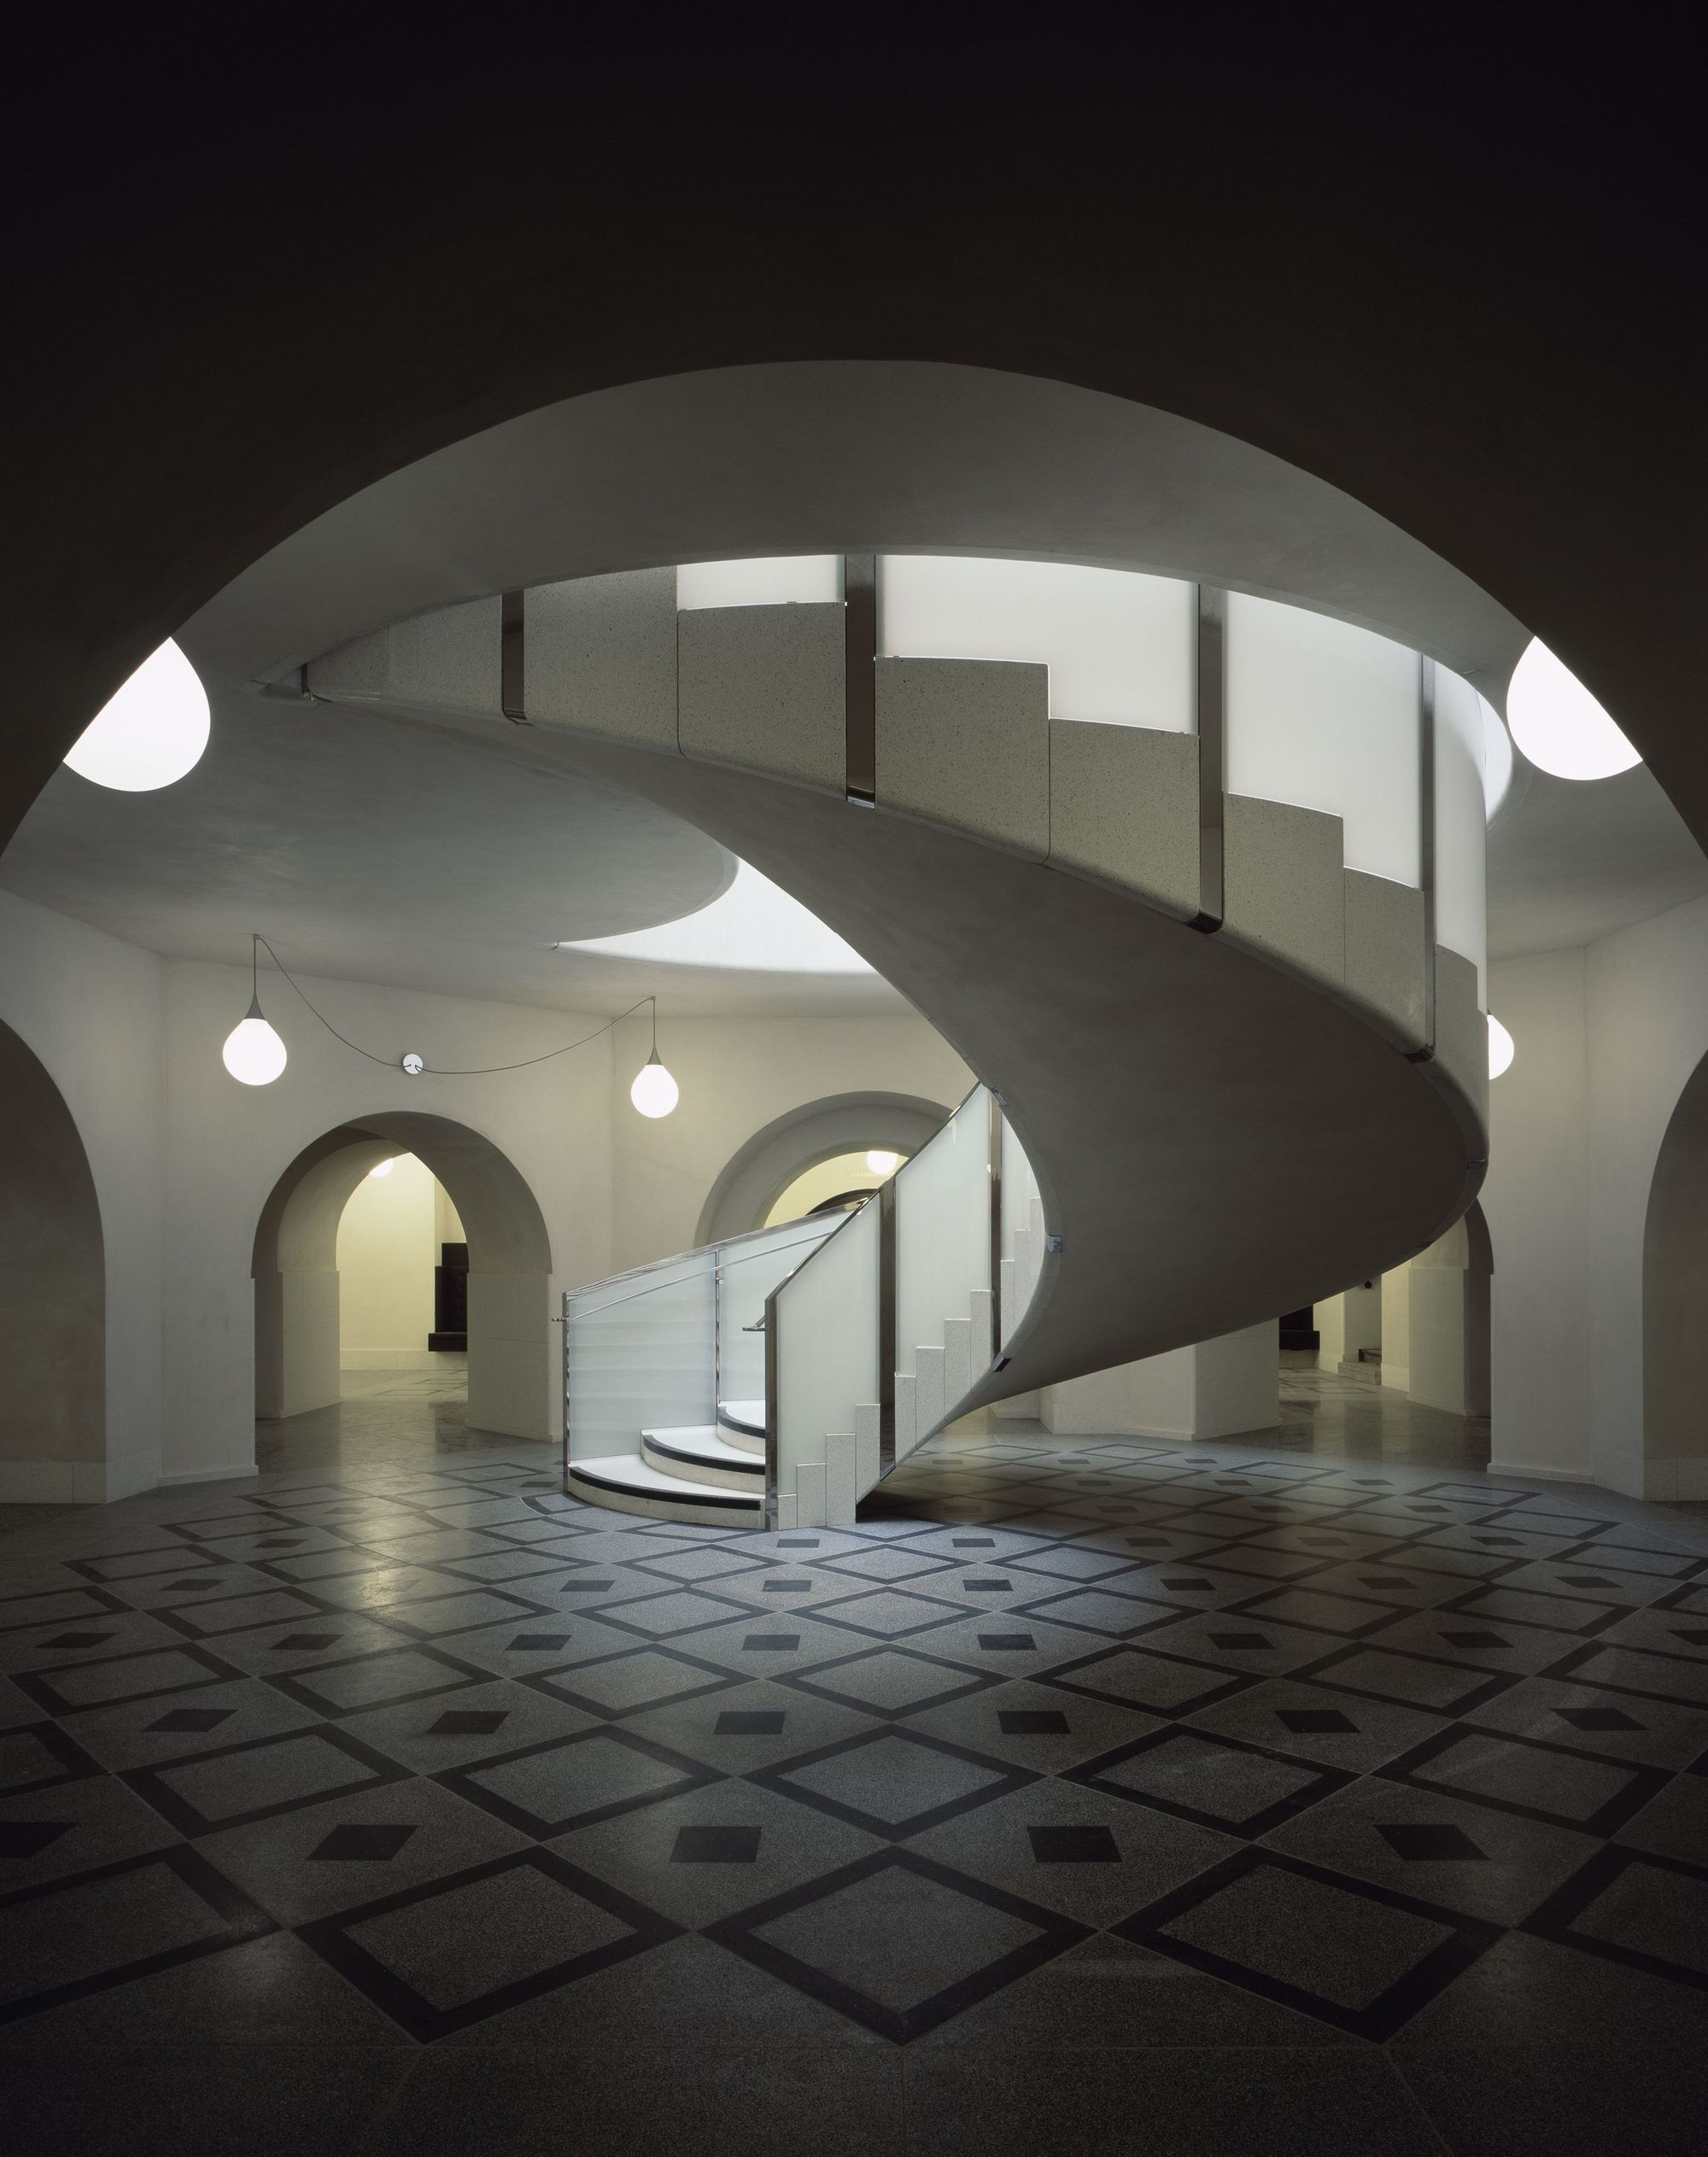 The Architects Choice_critical-round-up-tate-britain-renovation-caruso-st-john_02_lower_level_rotunda_-c-_helene_binet.jpg